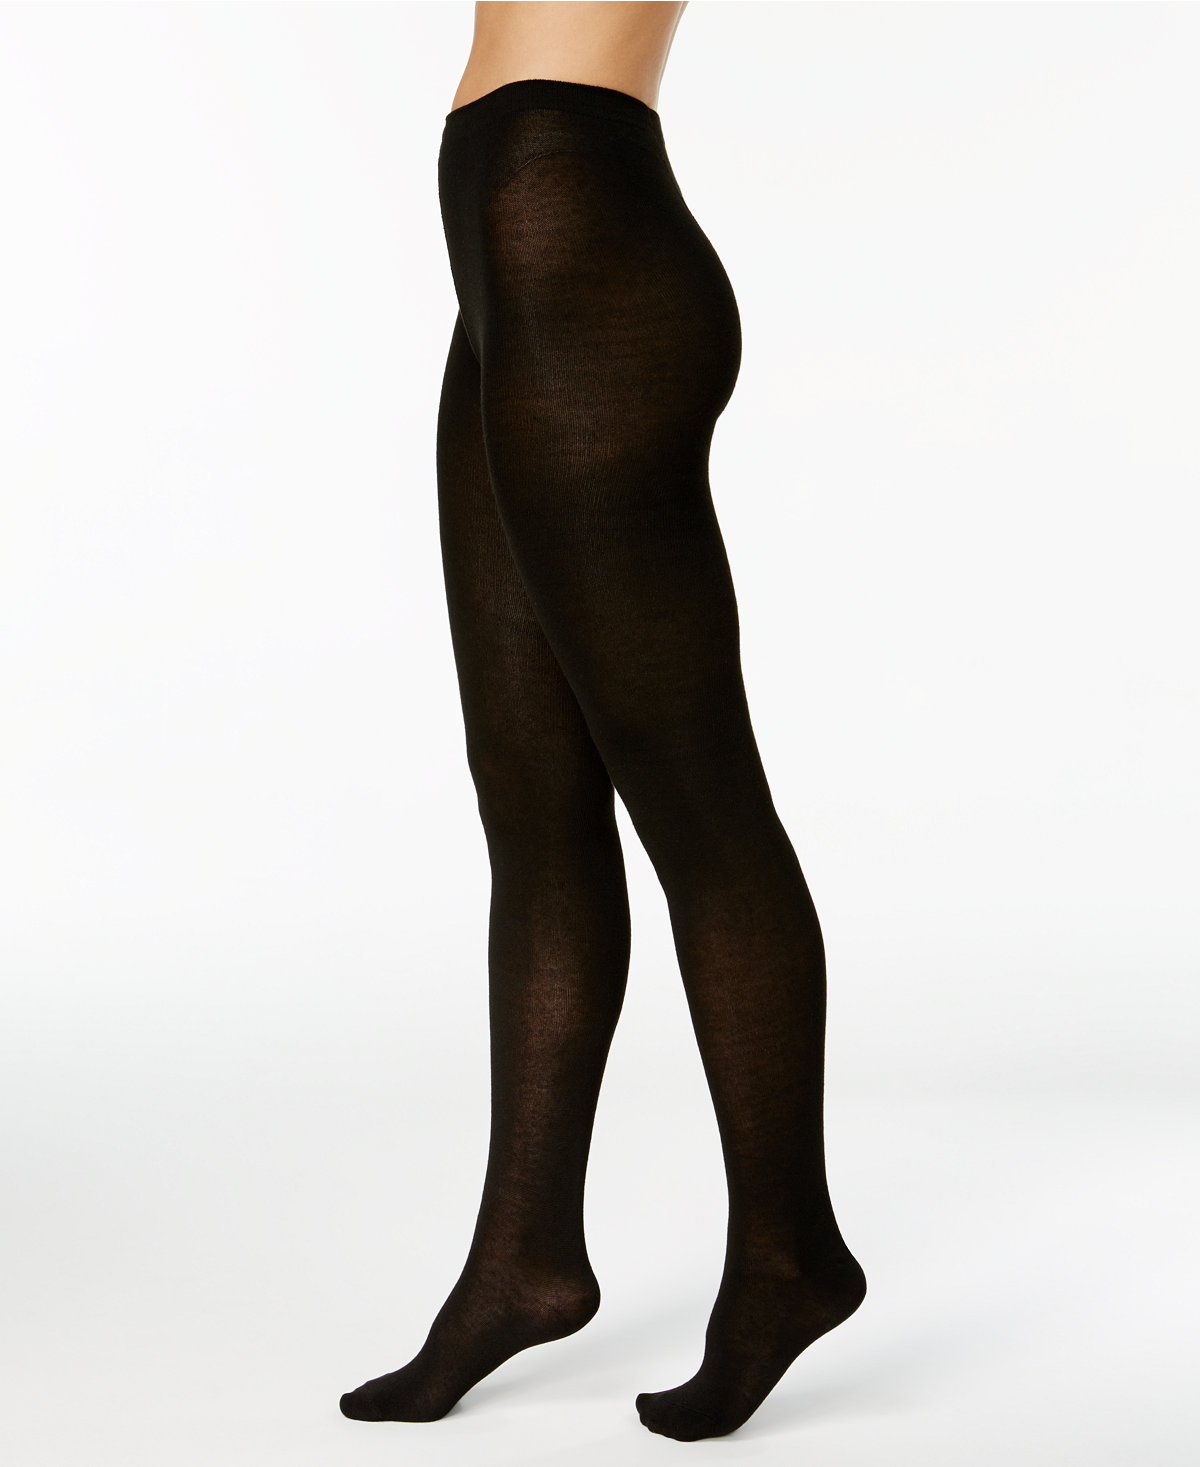 shaved legs flat knit nylons